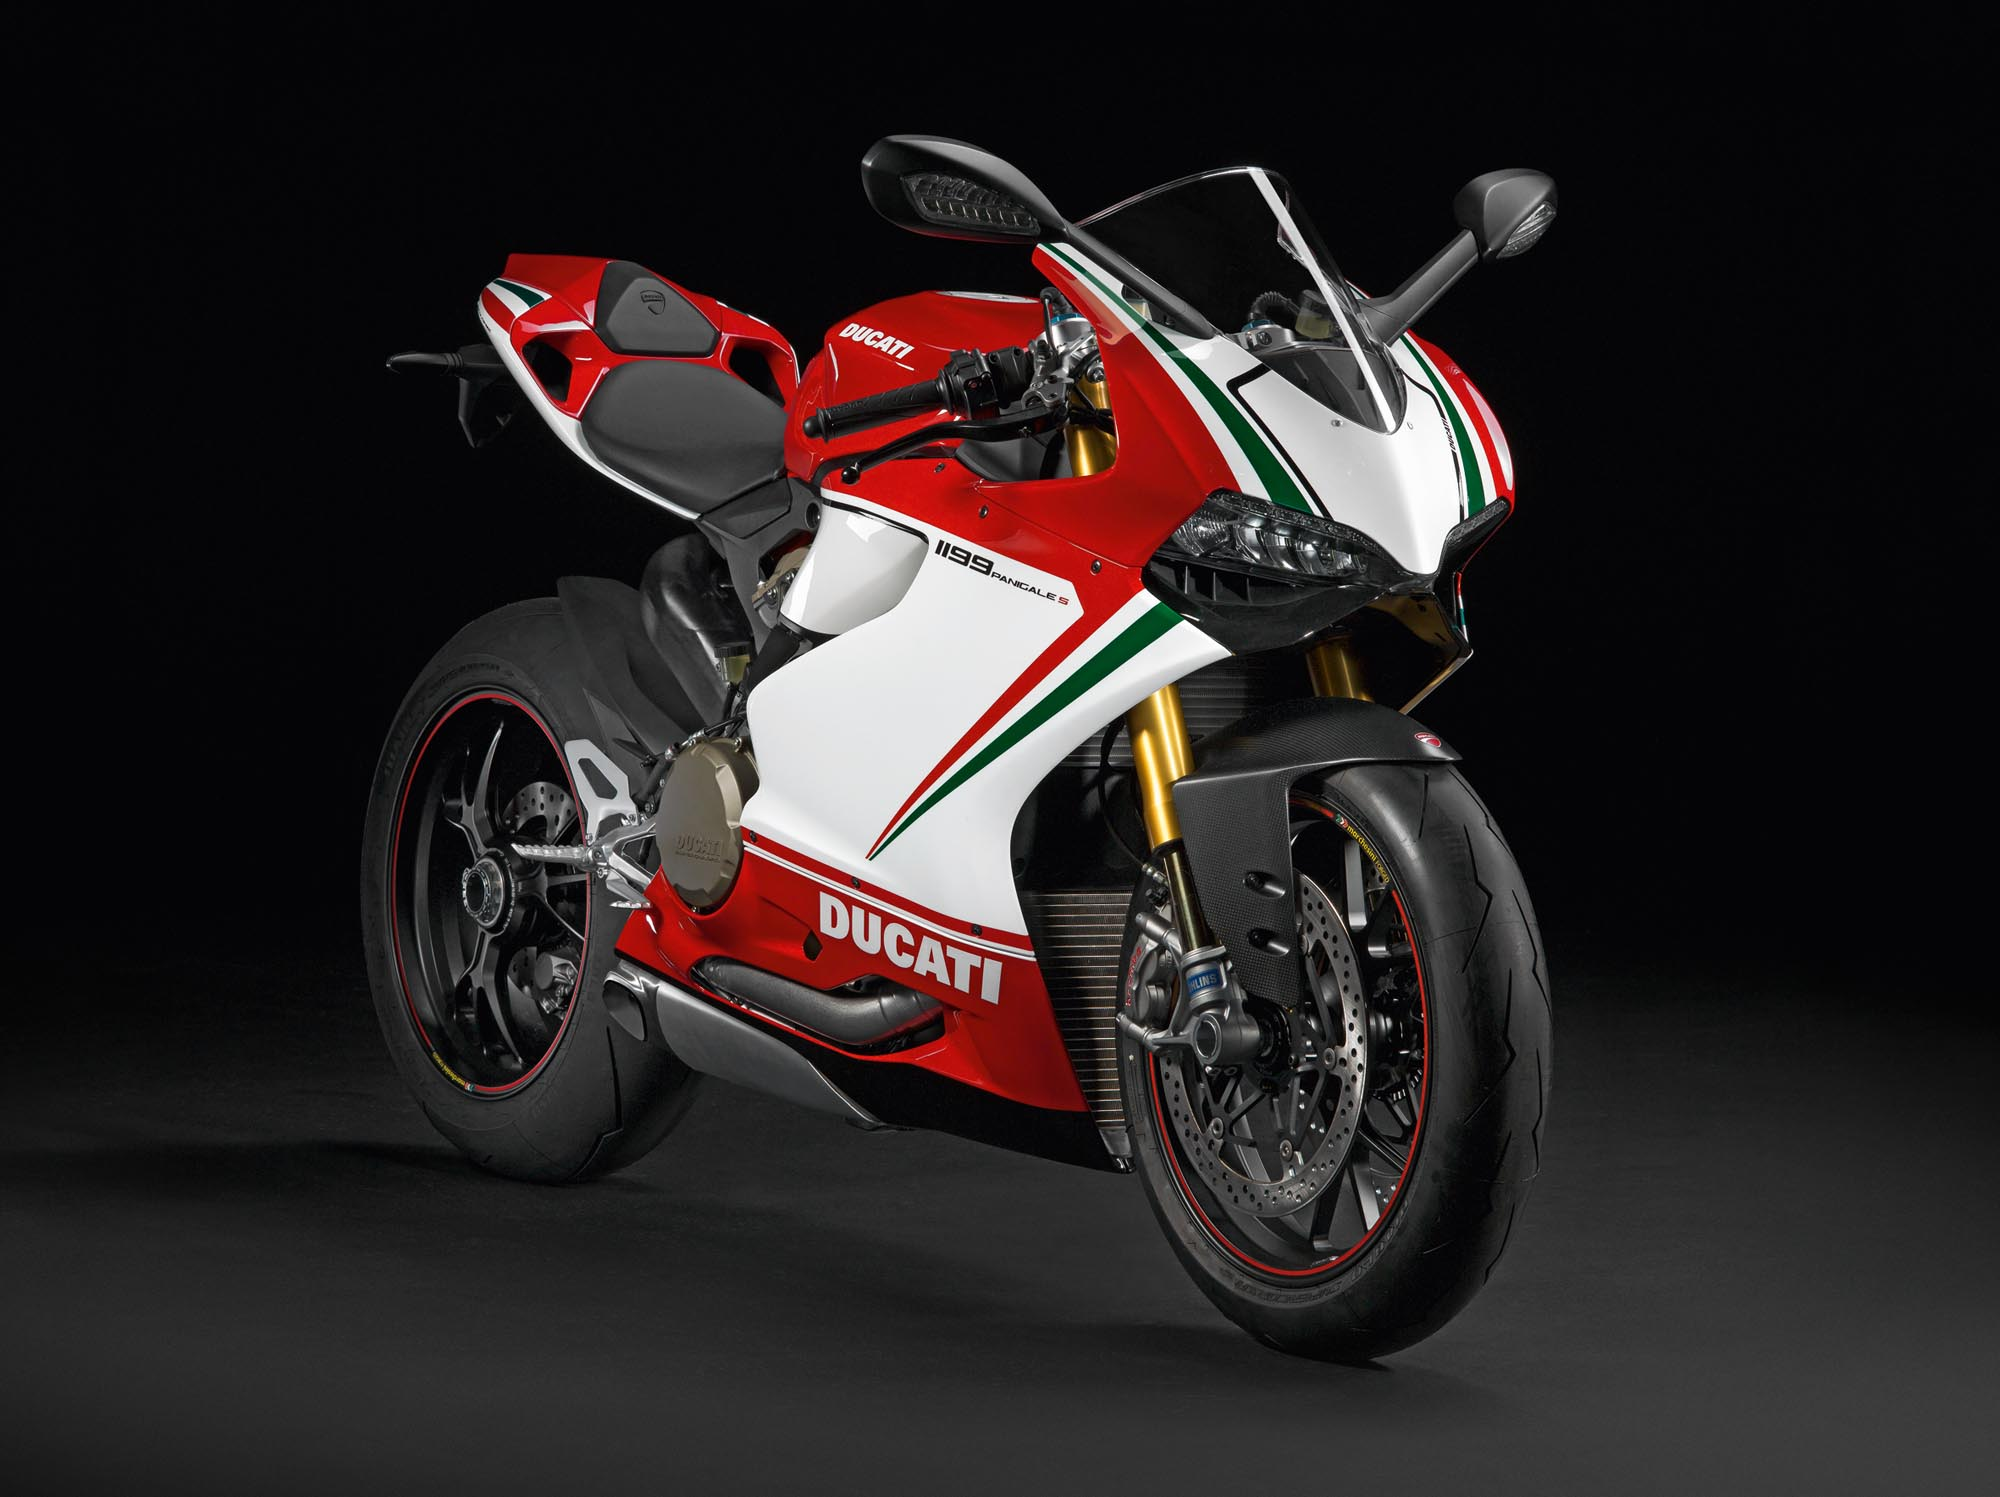 2012 ducati 1199 panigale. Black Bedroom Furniture Sets. Home Design Ideas